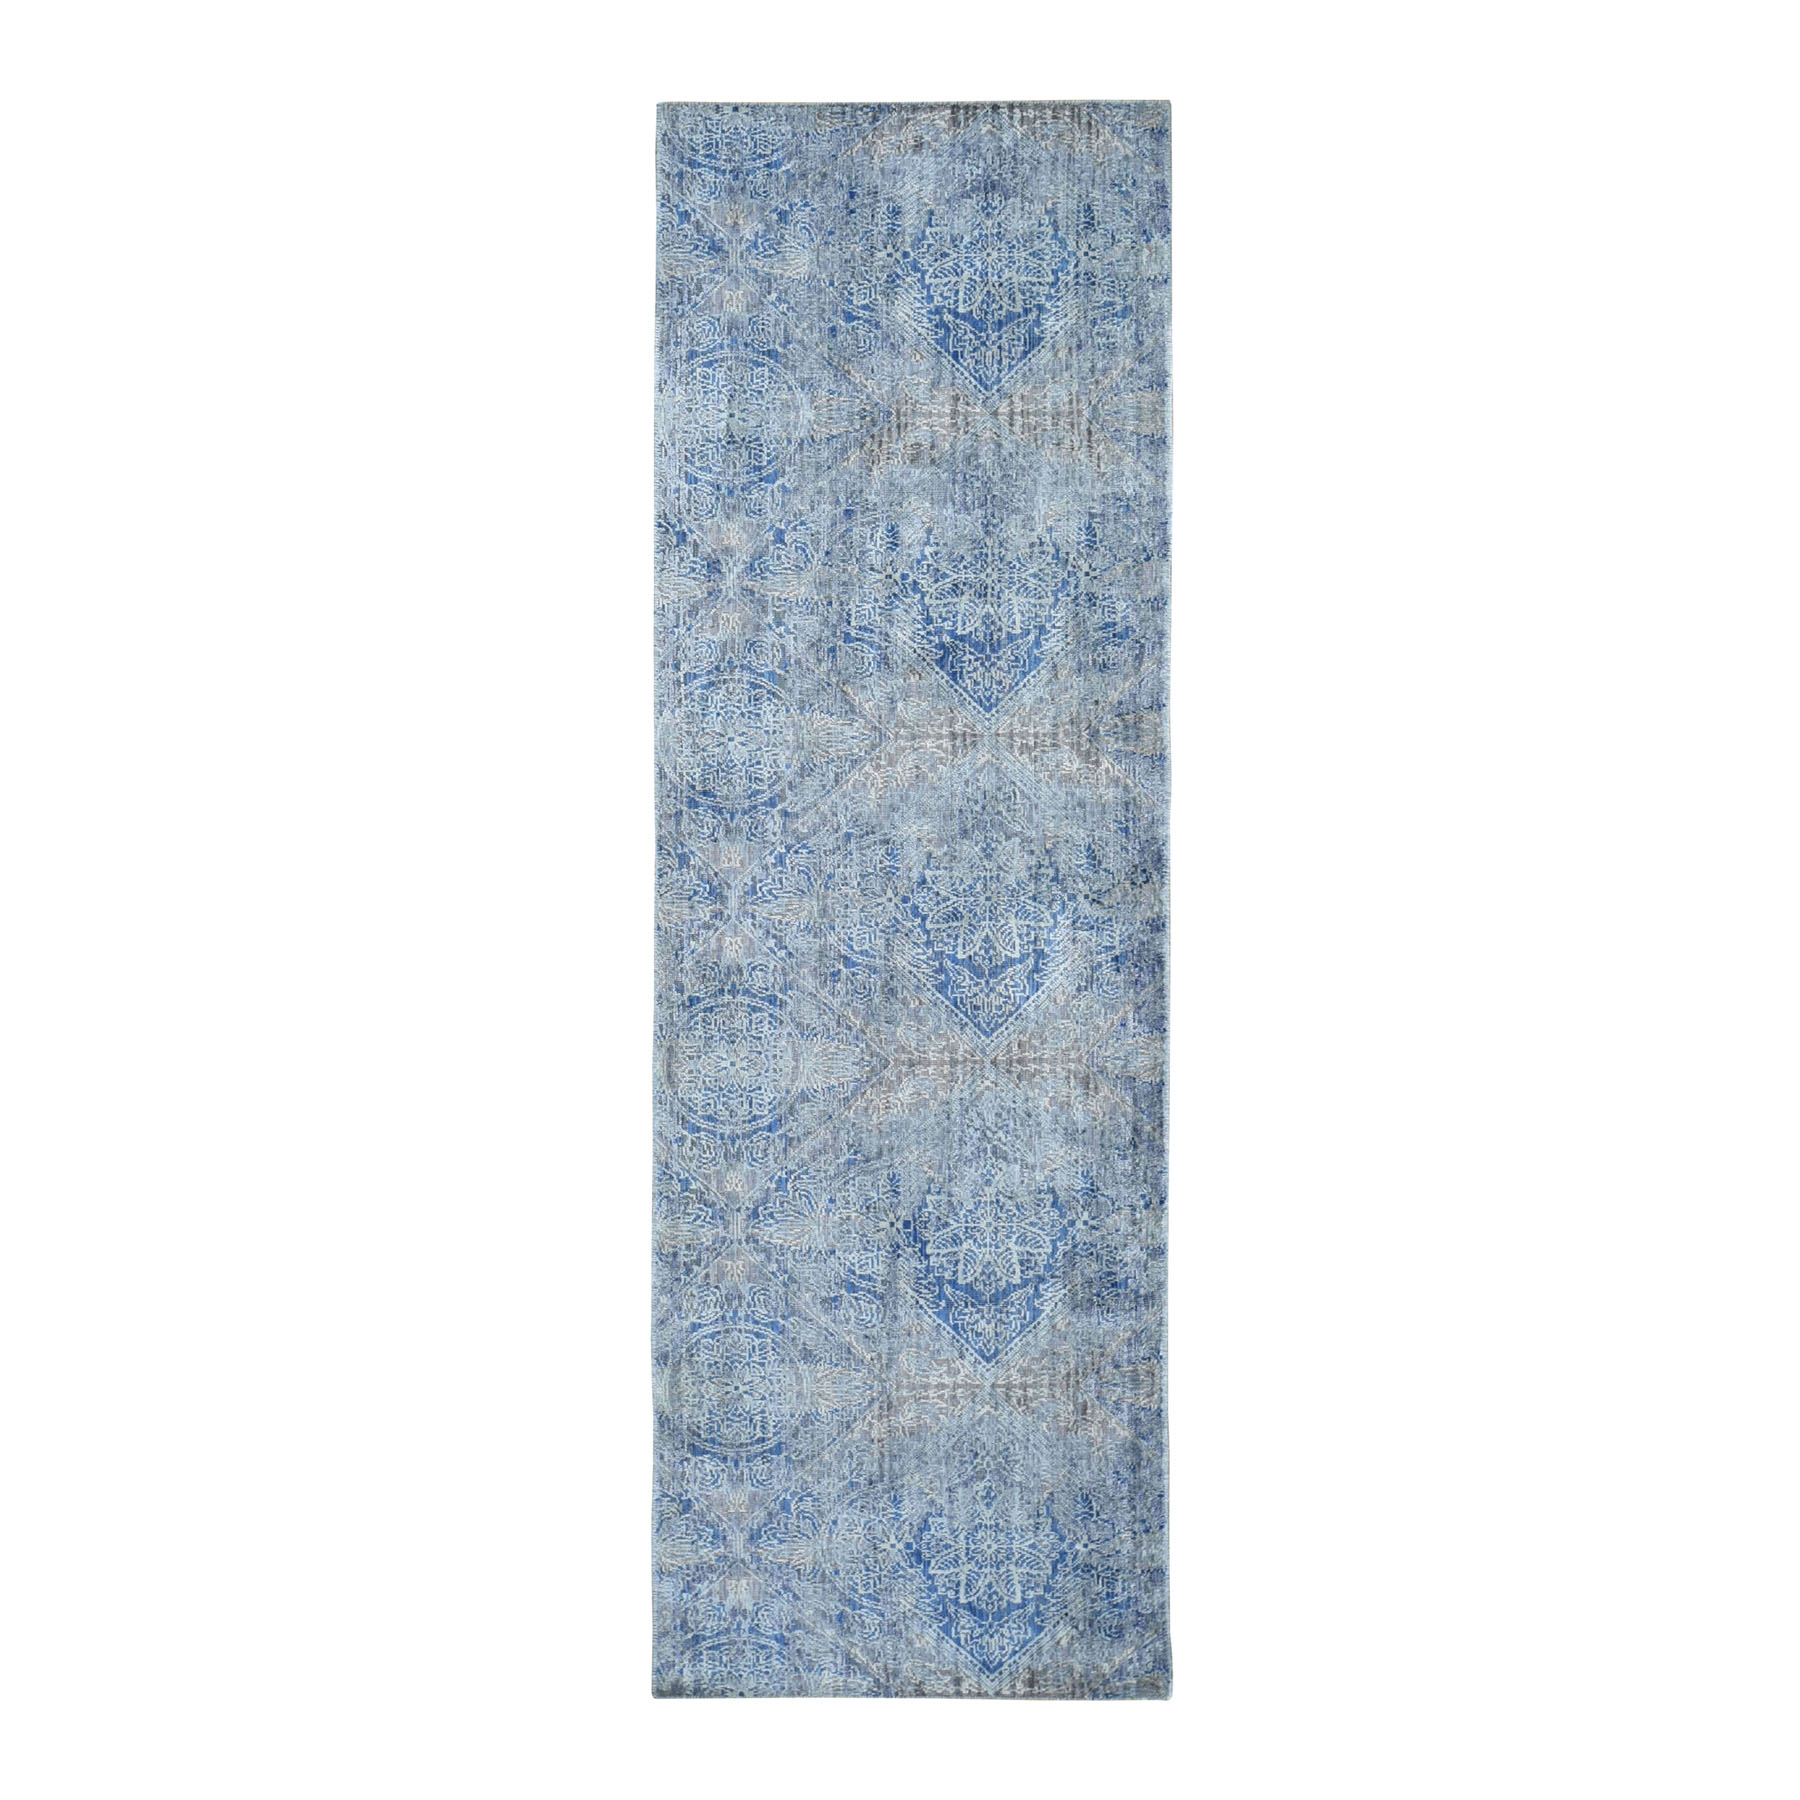 "2'8""x8'9"" ERASED ROSSETS,Silk With Textured Wool Denim Blue Runner Hand-Knotted Oriental Rug"